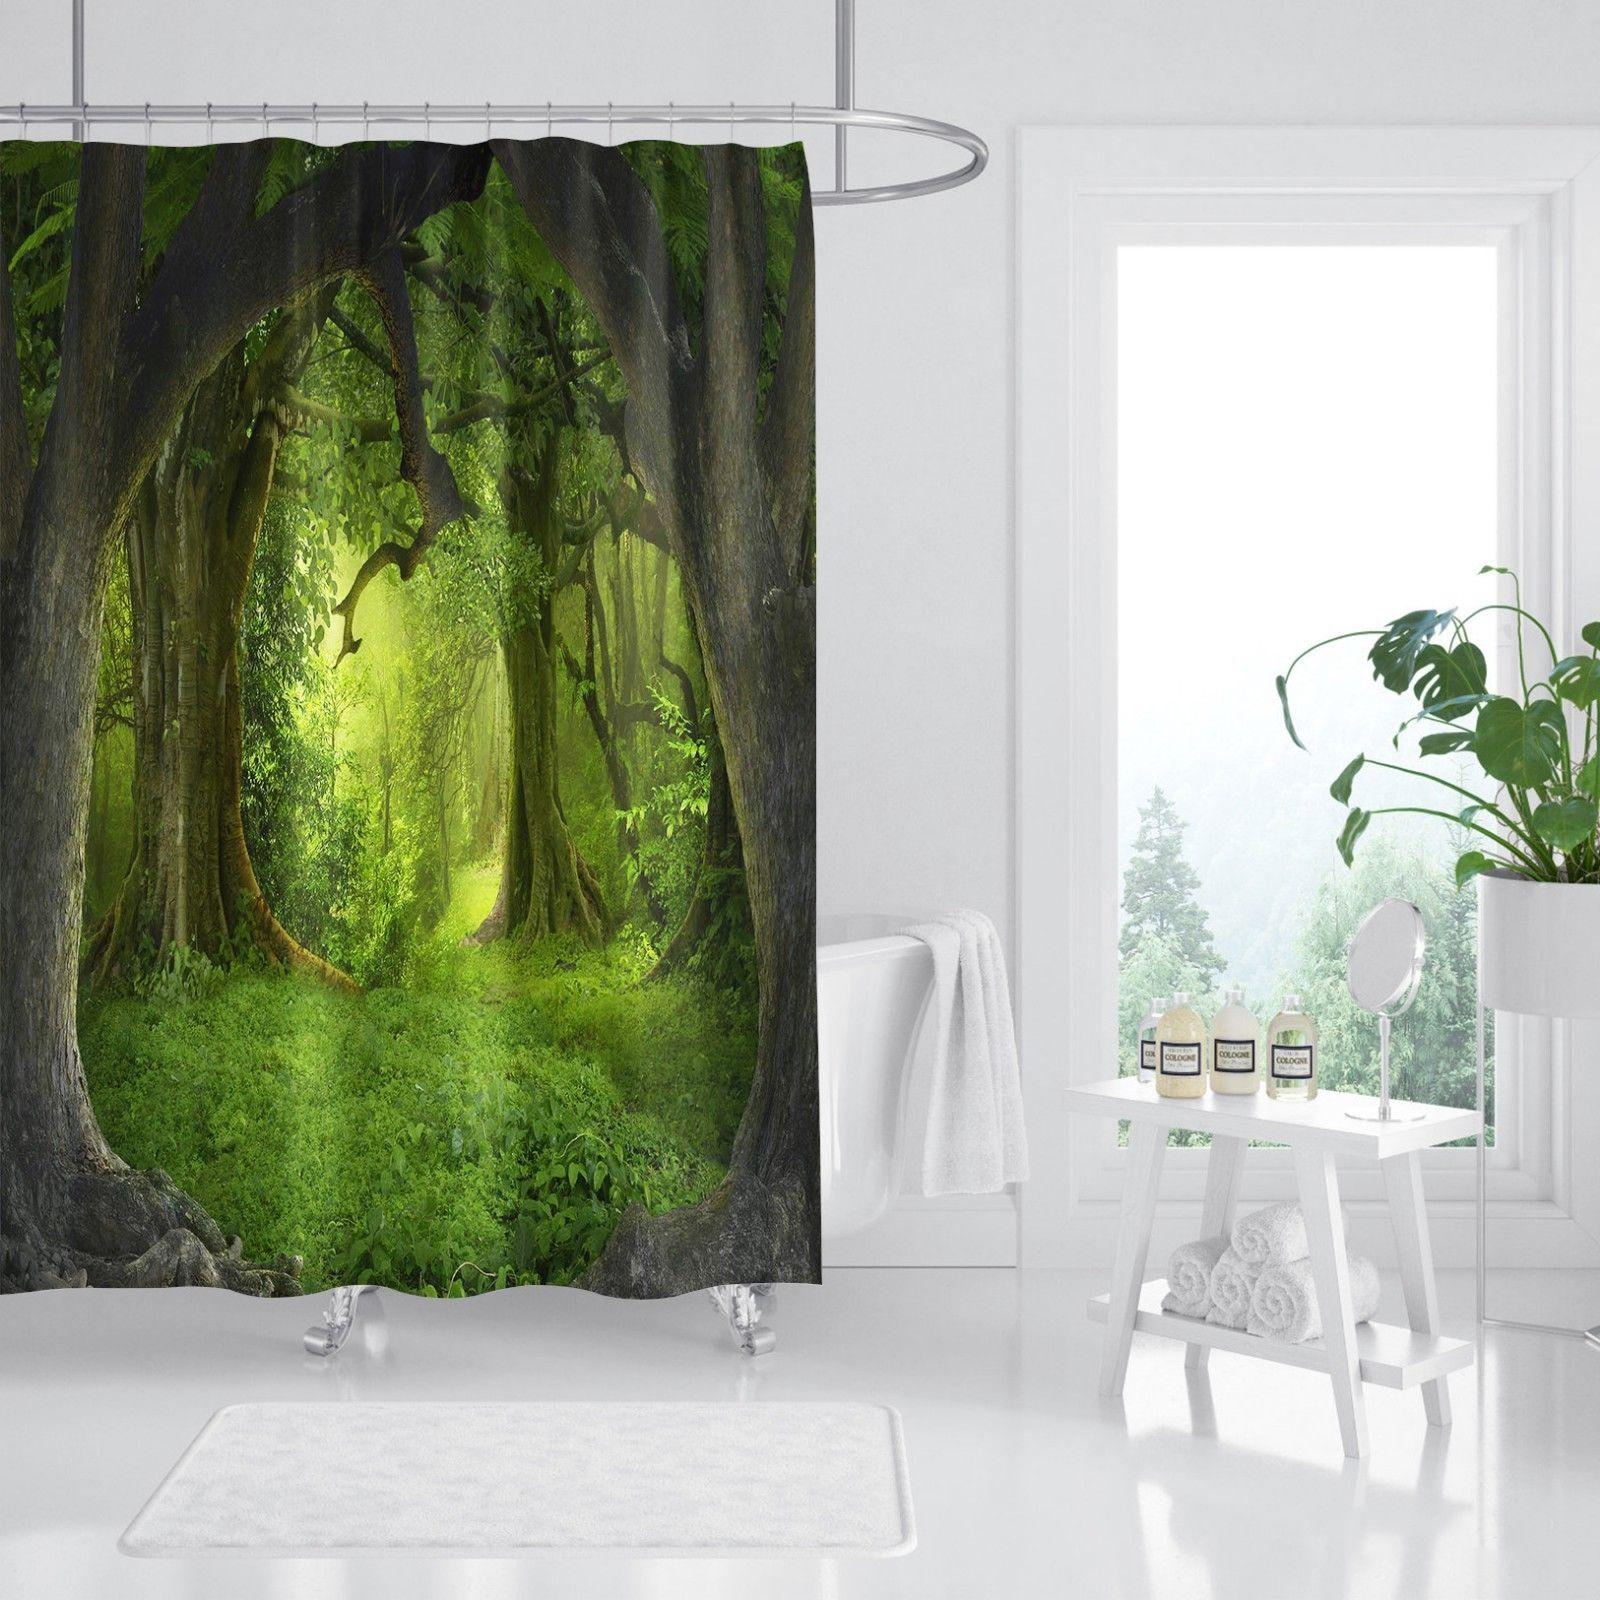 2019 3d Dark Green Tree Shower Curtain Durable Fabric Mildew Bathroom Accessories Creative With 12 Hooks 180x180cm From Zhouyueli222 19 0